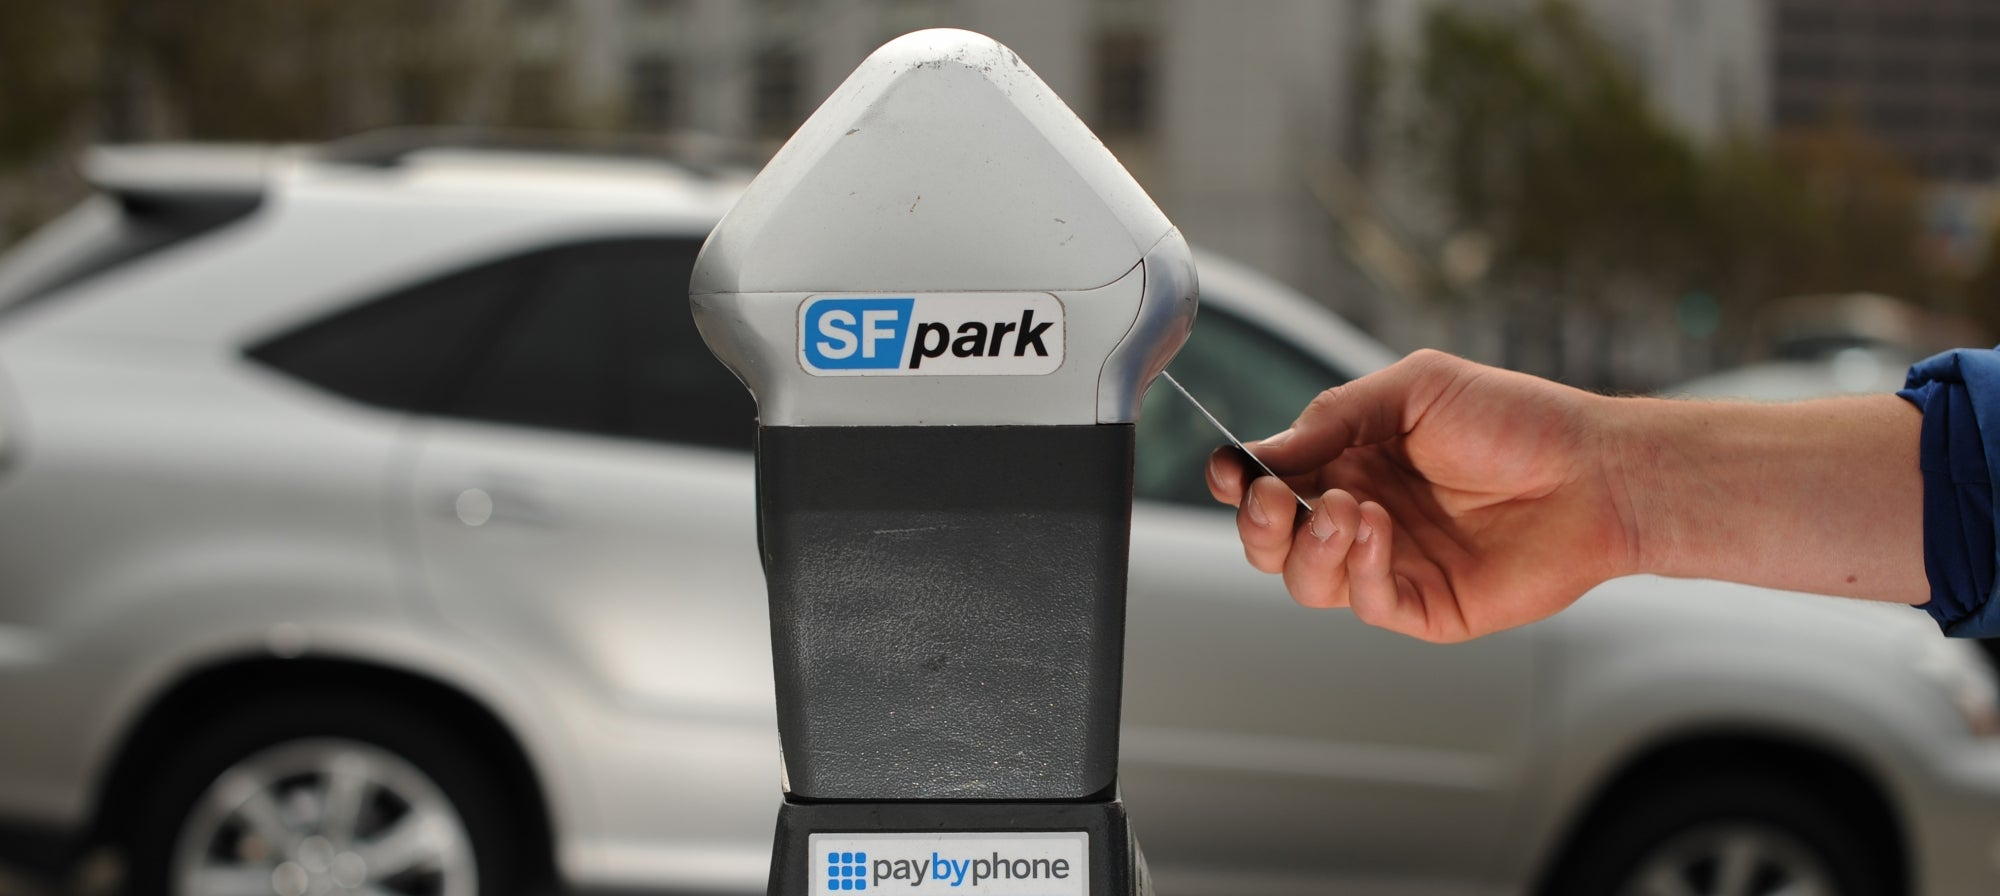 A driver inserts a credit card in a smart parking meter in SF.